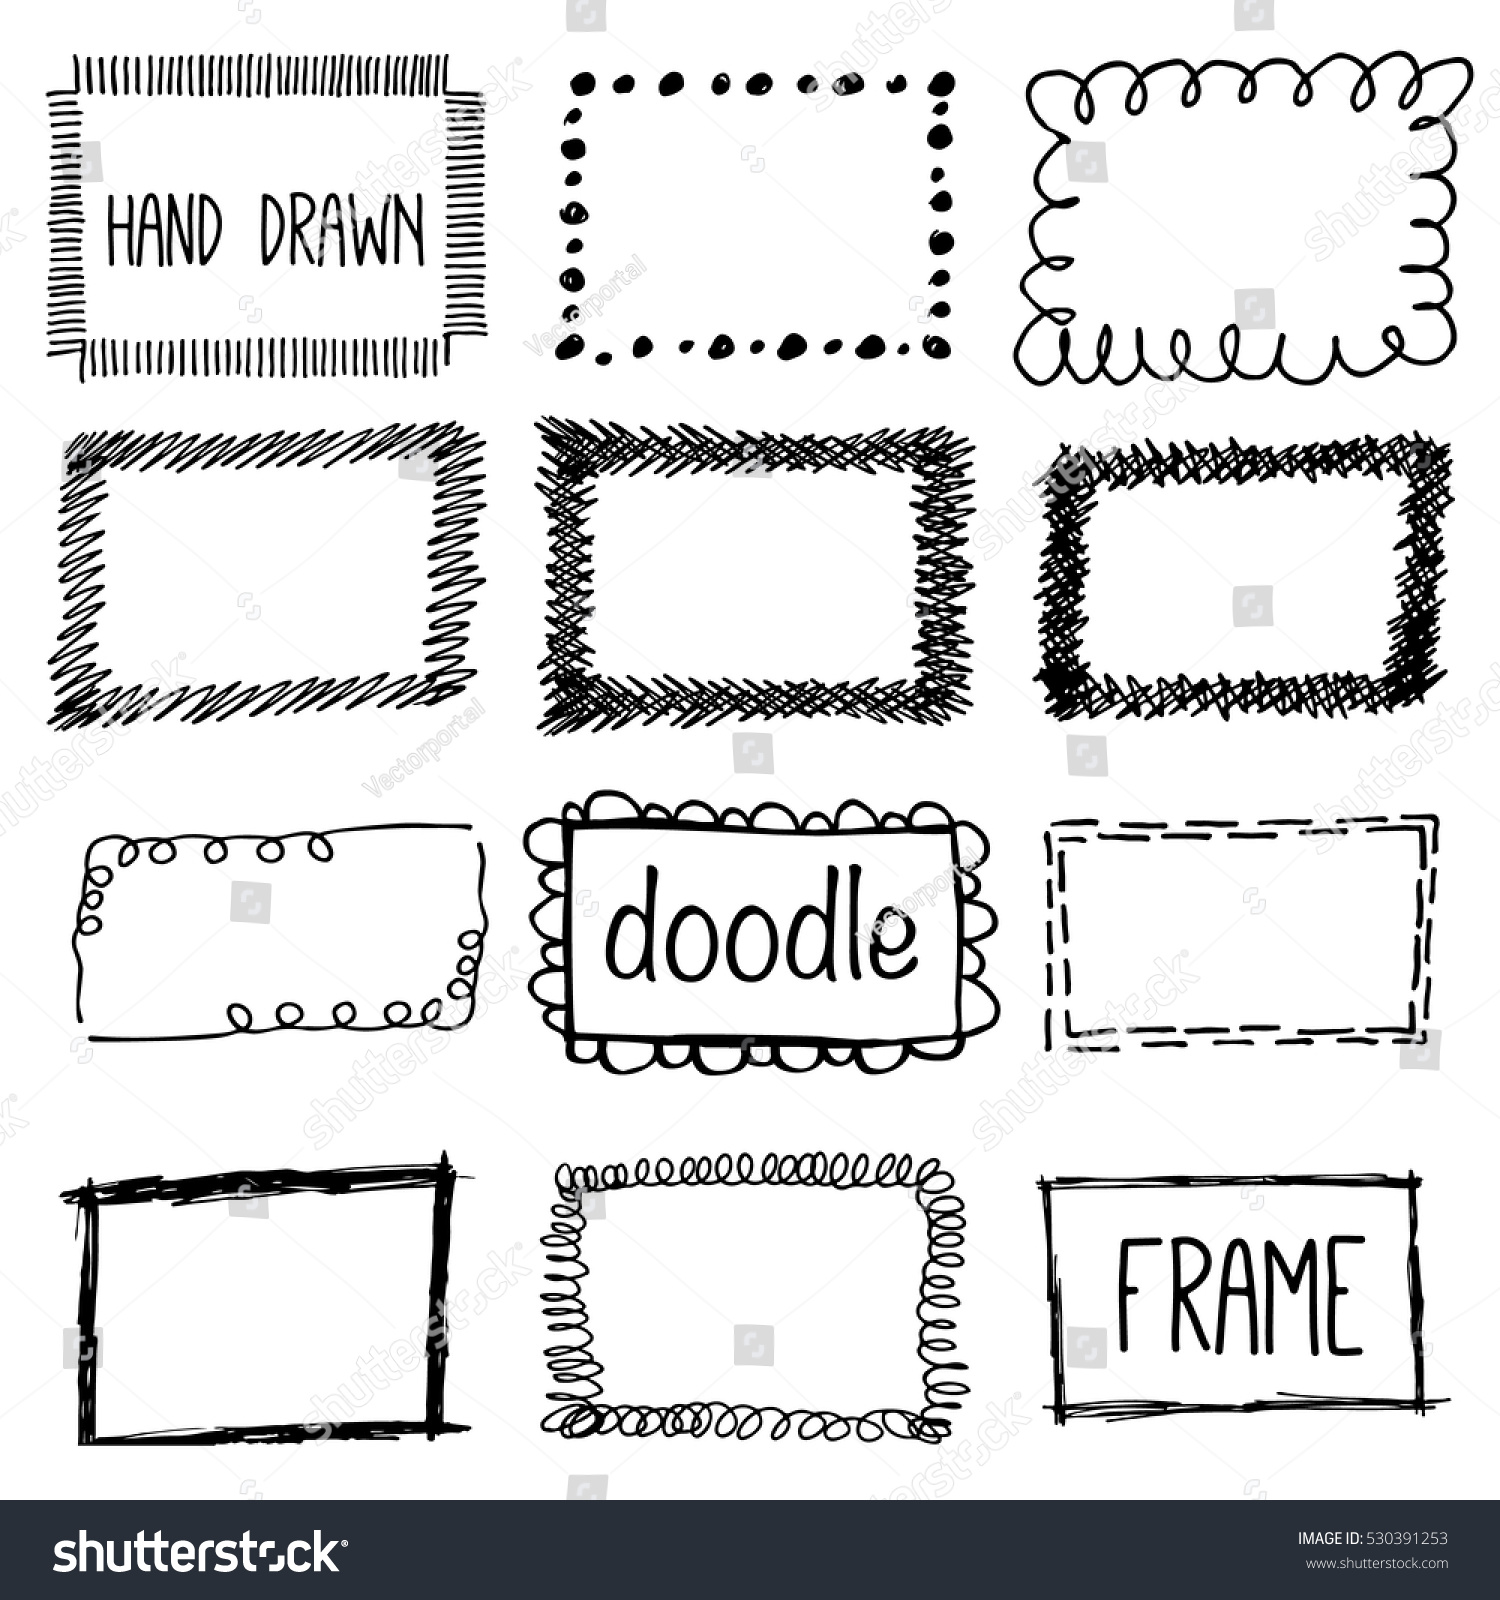 Hand Draw Pencil Frame Sketch Doodle Stock Vector (2018) 530391253 ...